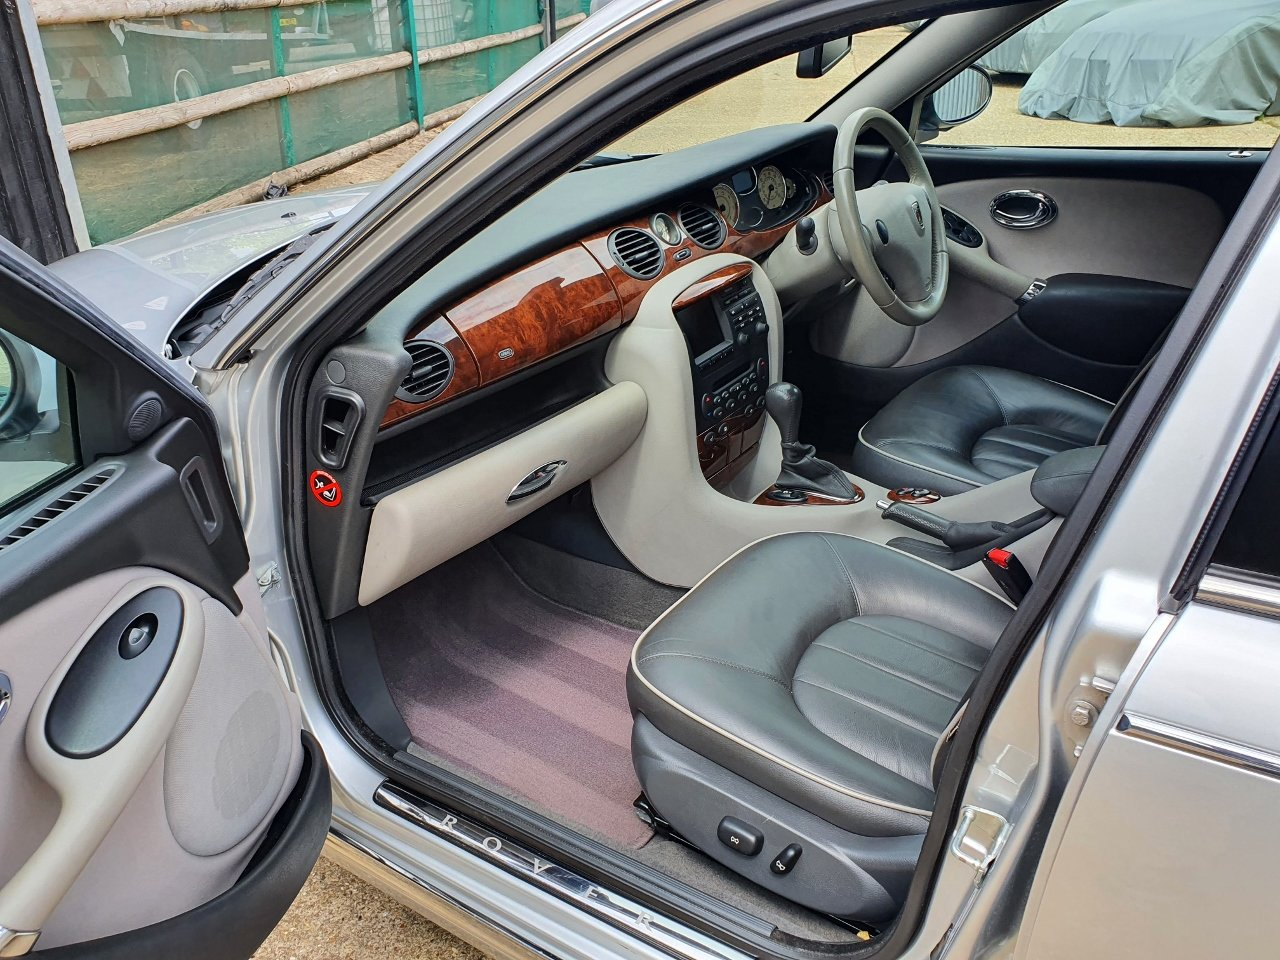 2003 ONLY 34,000 Miles - Rover 75 Connoisseur SE 2.5 V6 - 1 Owner SOLD (picture 8 of 10)